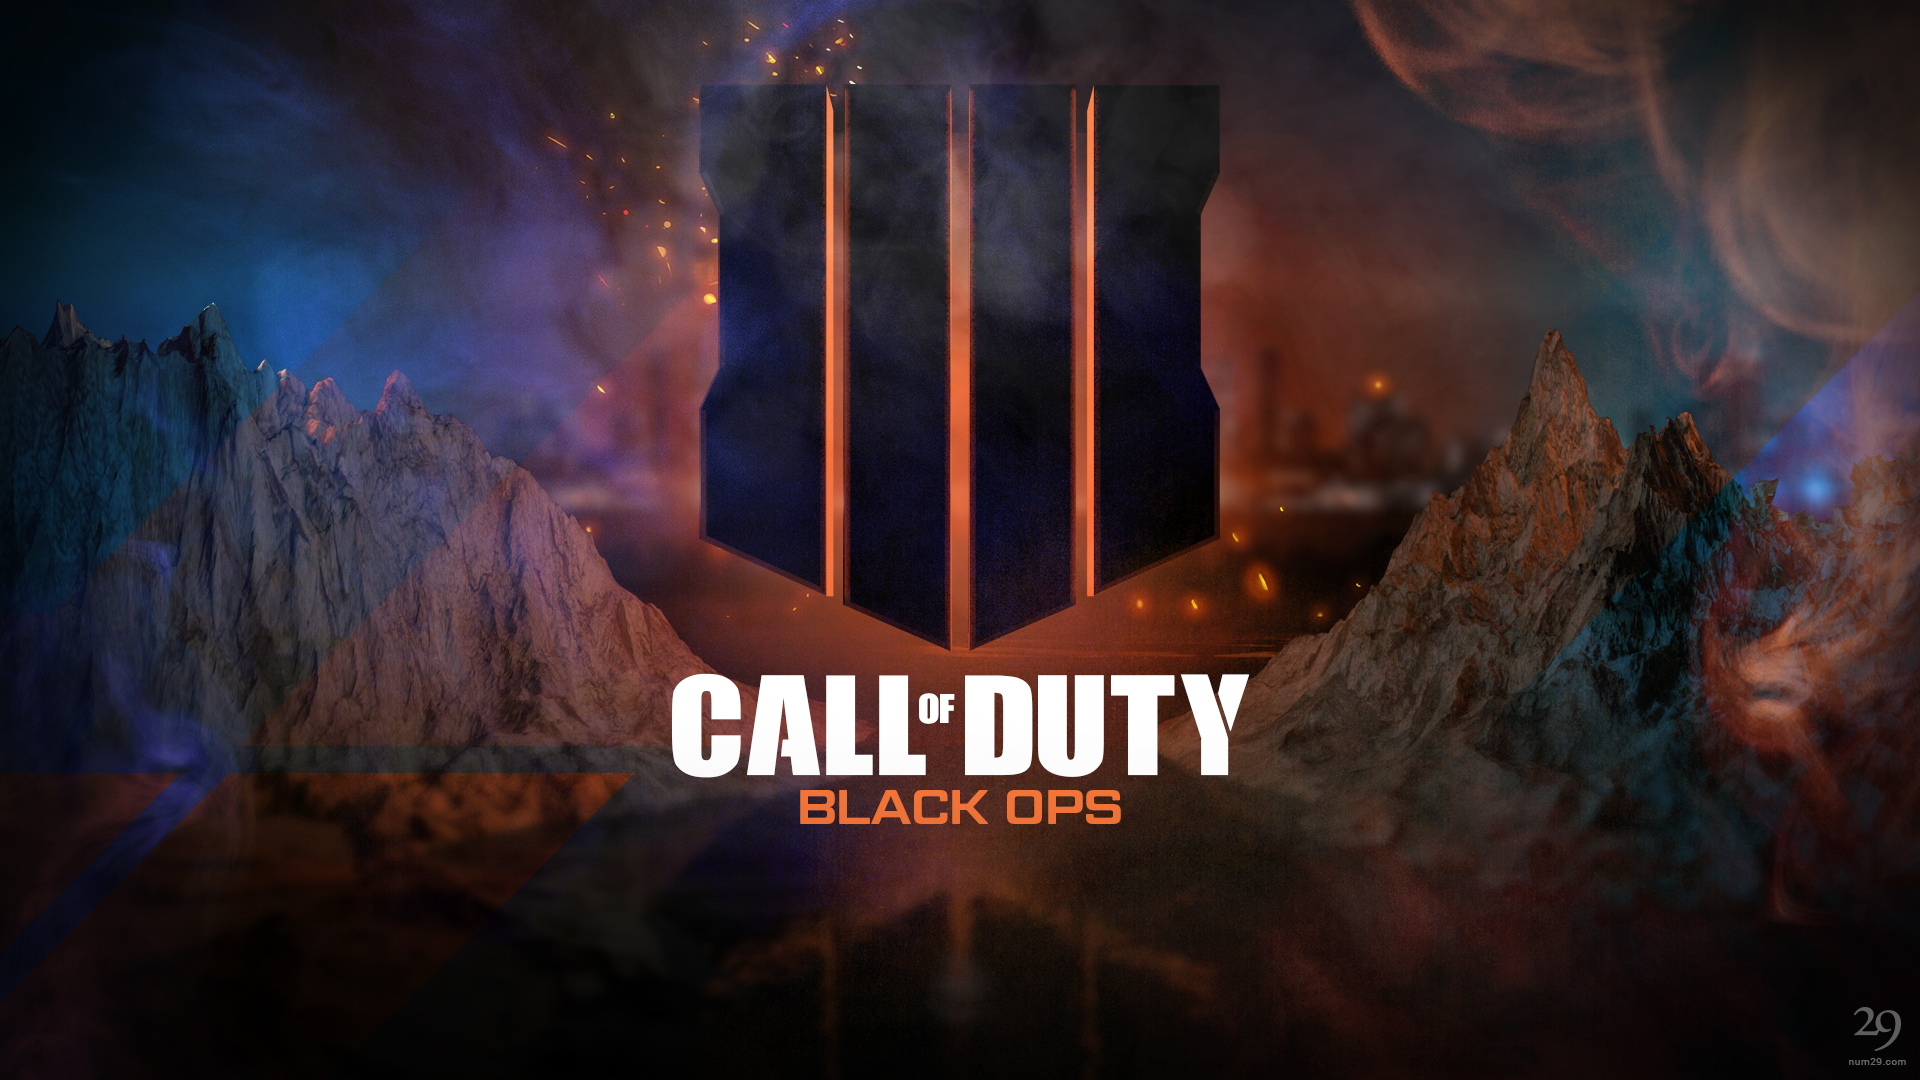 Duty – Black Ops 4 – Free Wallpaper